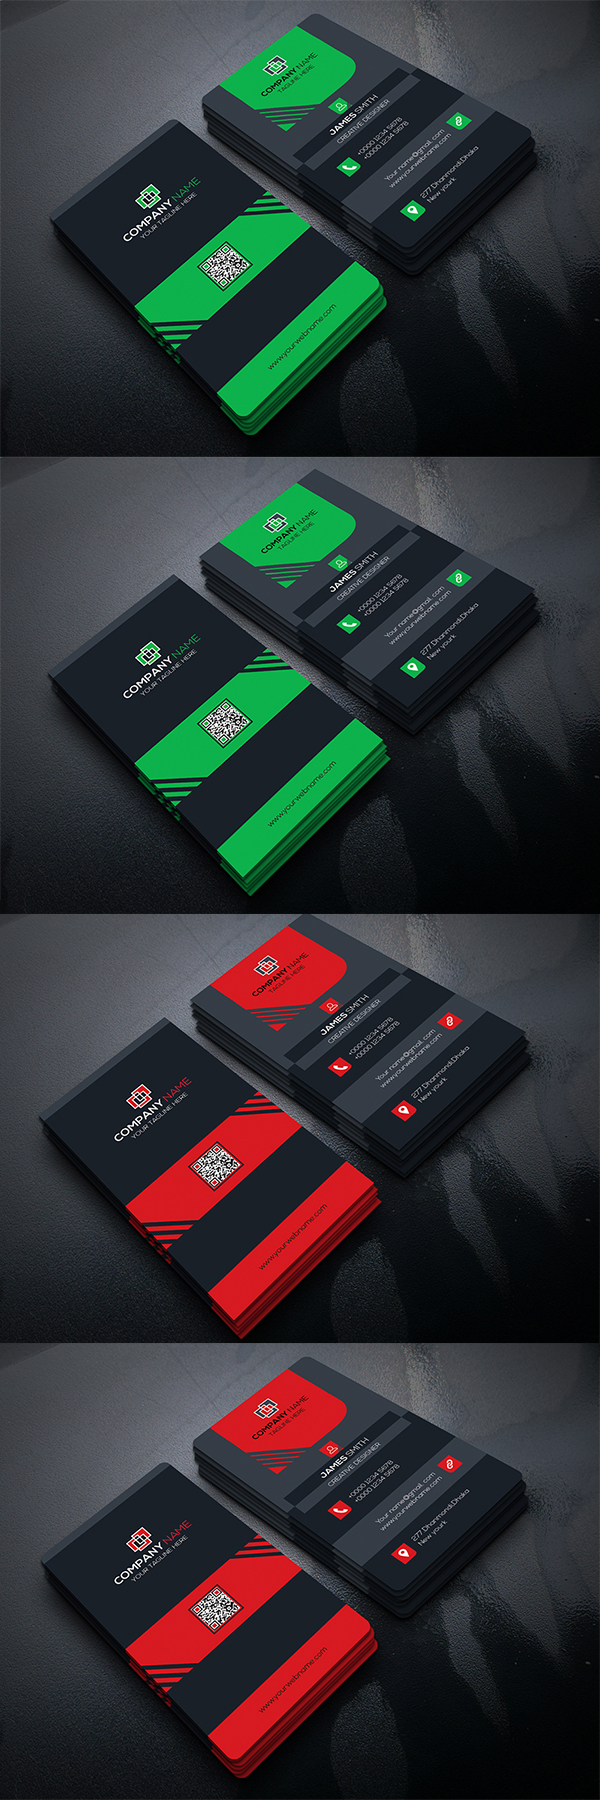 05 Business Card Design